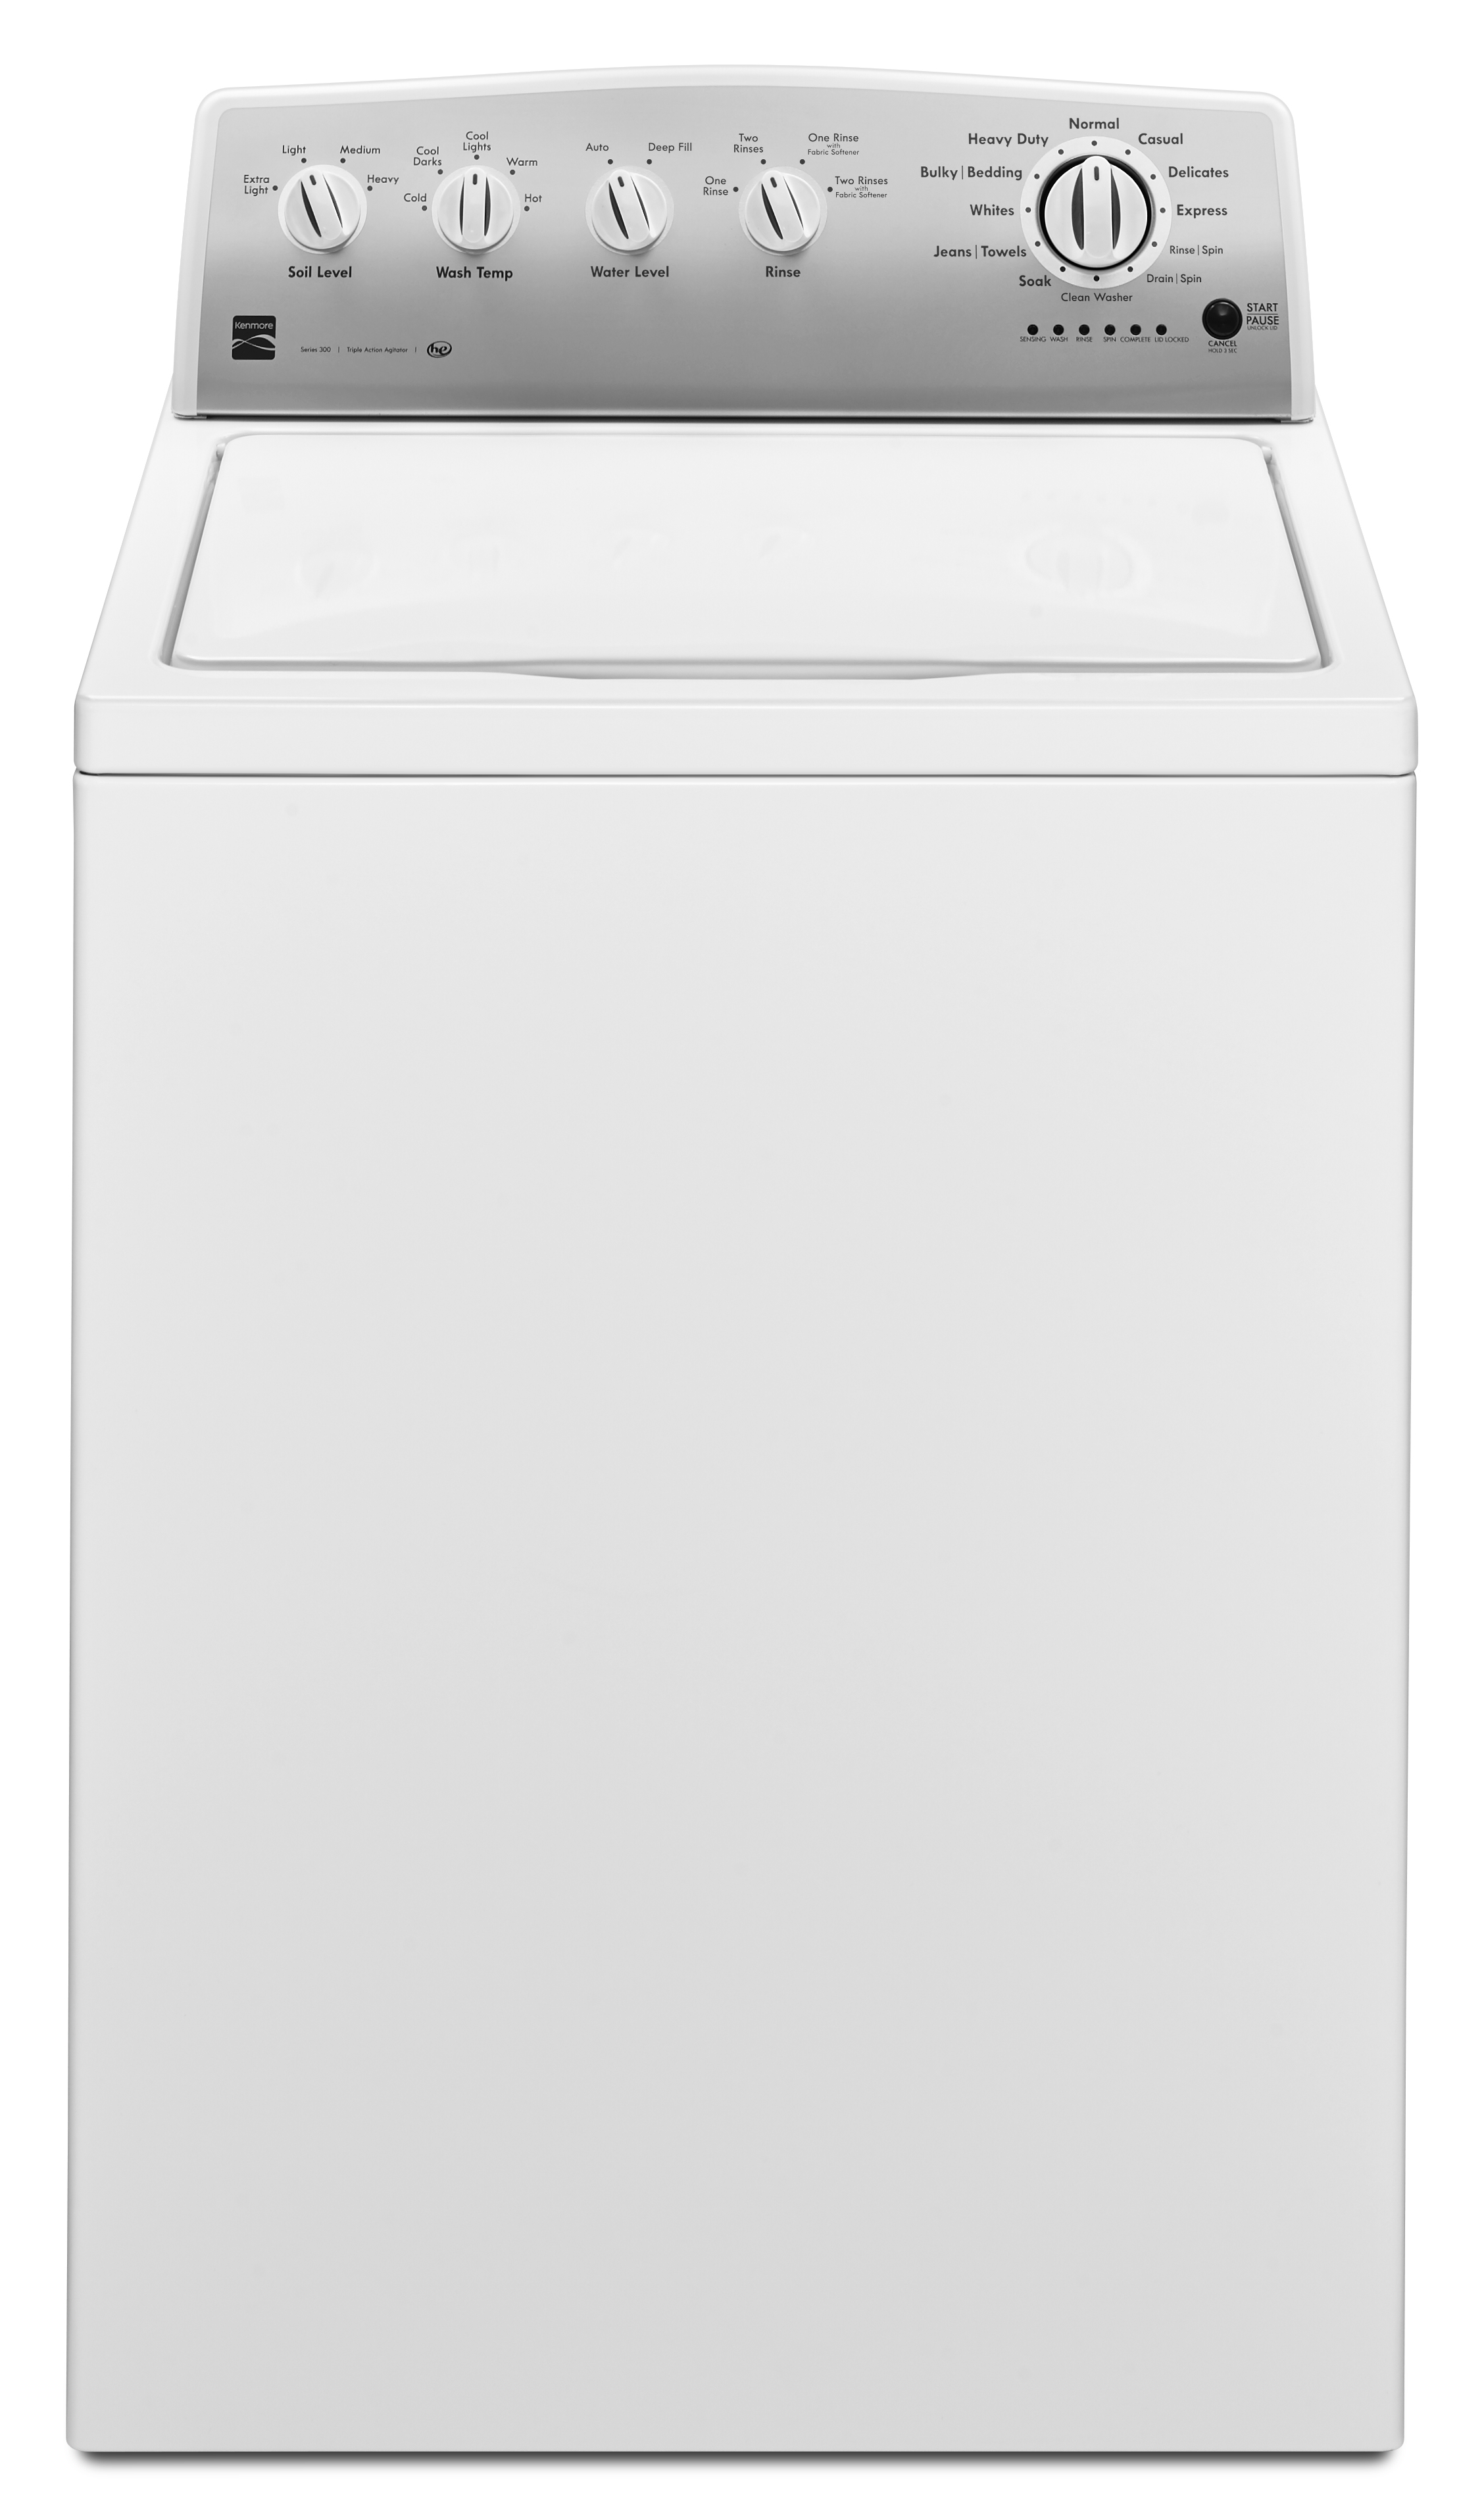 Kenmore 22242 3.6 cu. ft. Agitator Top-Load Washer - White